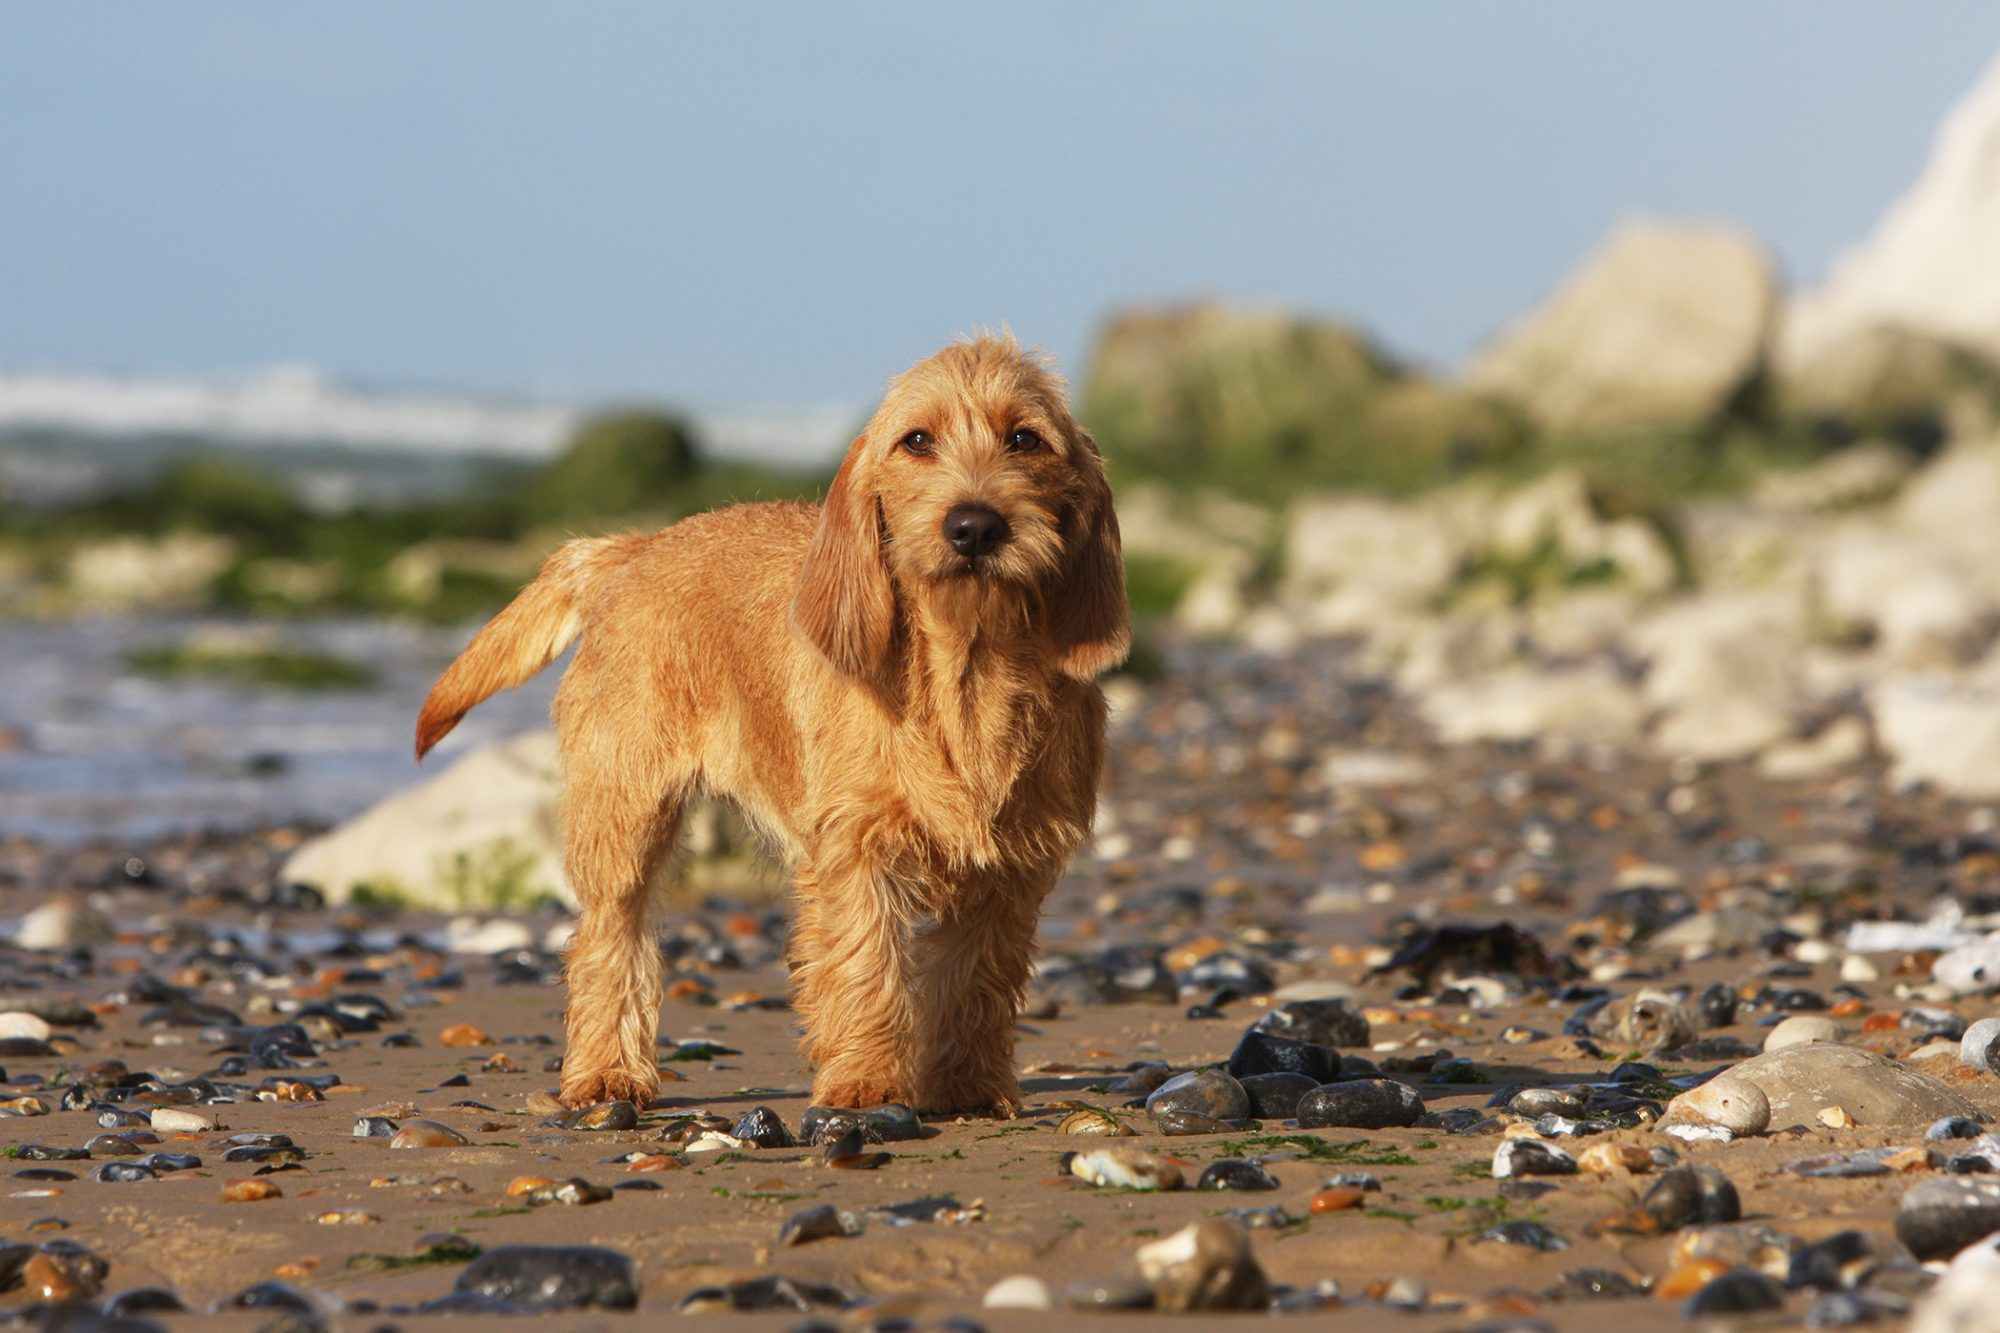 Copper-colored Brittany basset stands on rocky shoreline